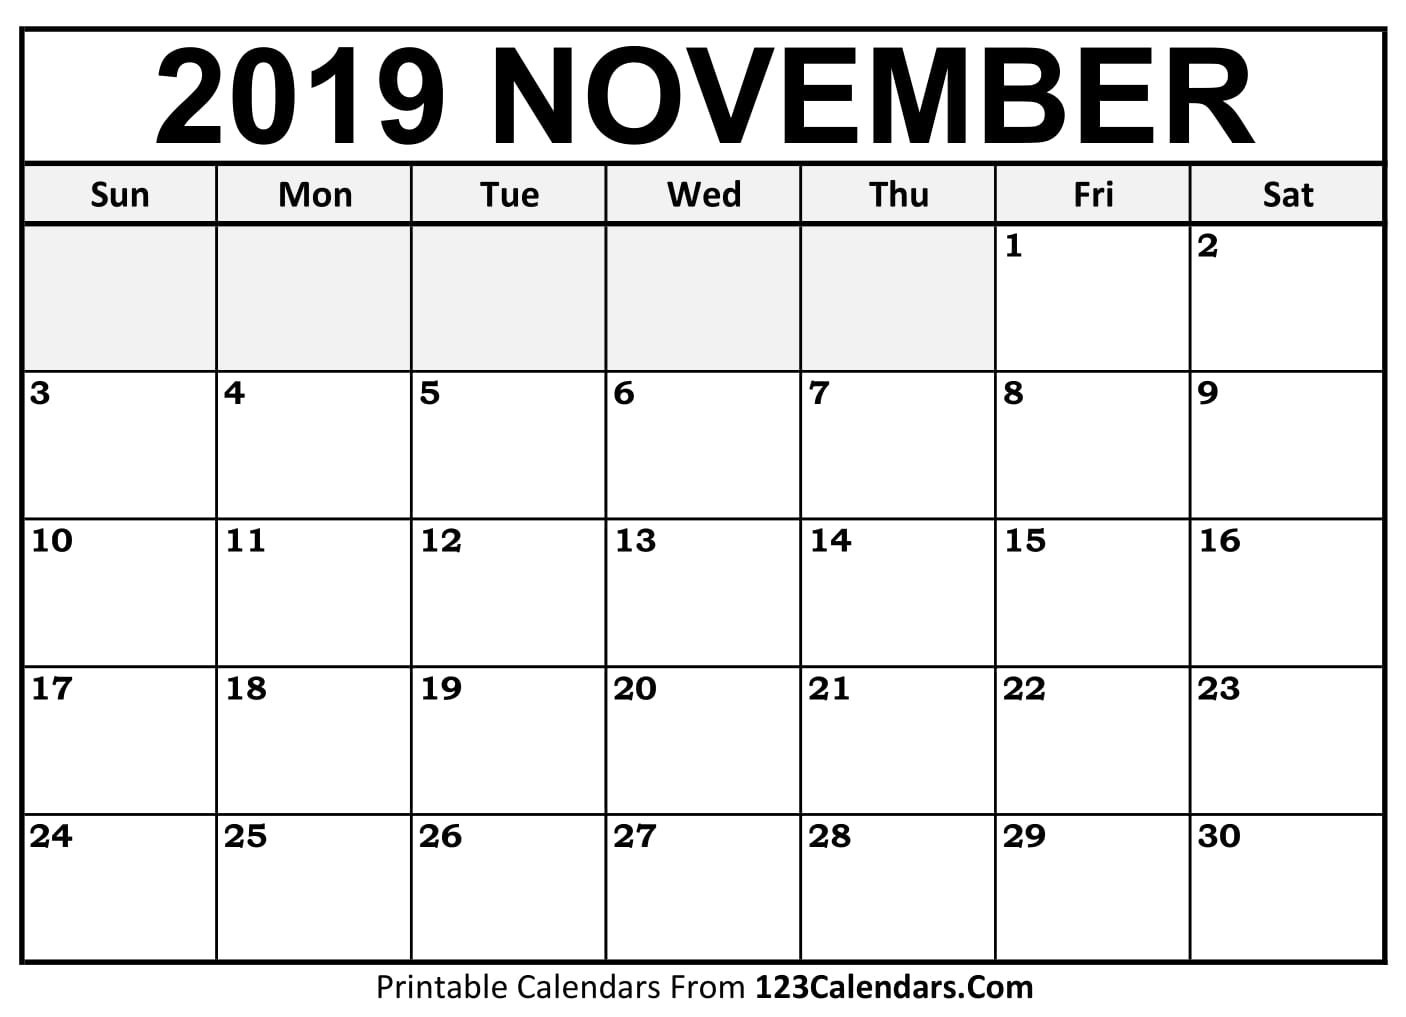 image about Printable Nov. Calendar called November 2019 Printable Calendar